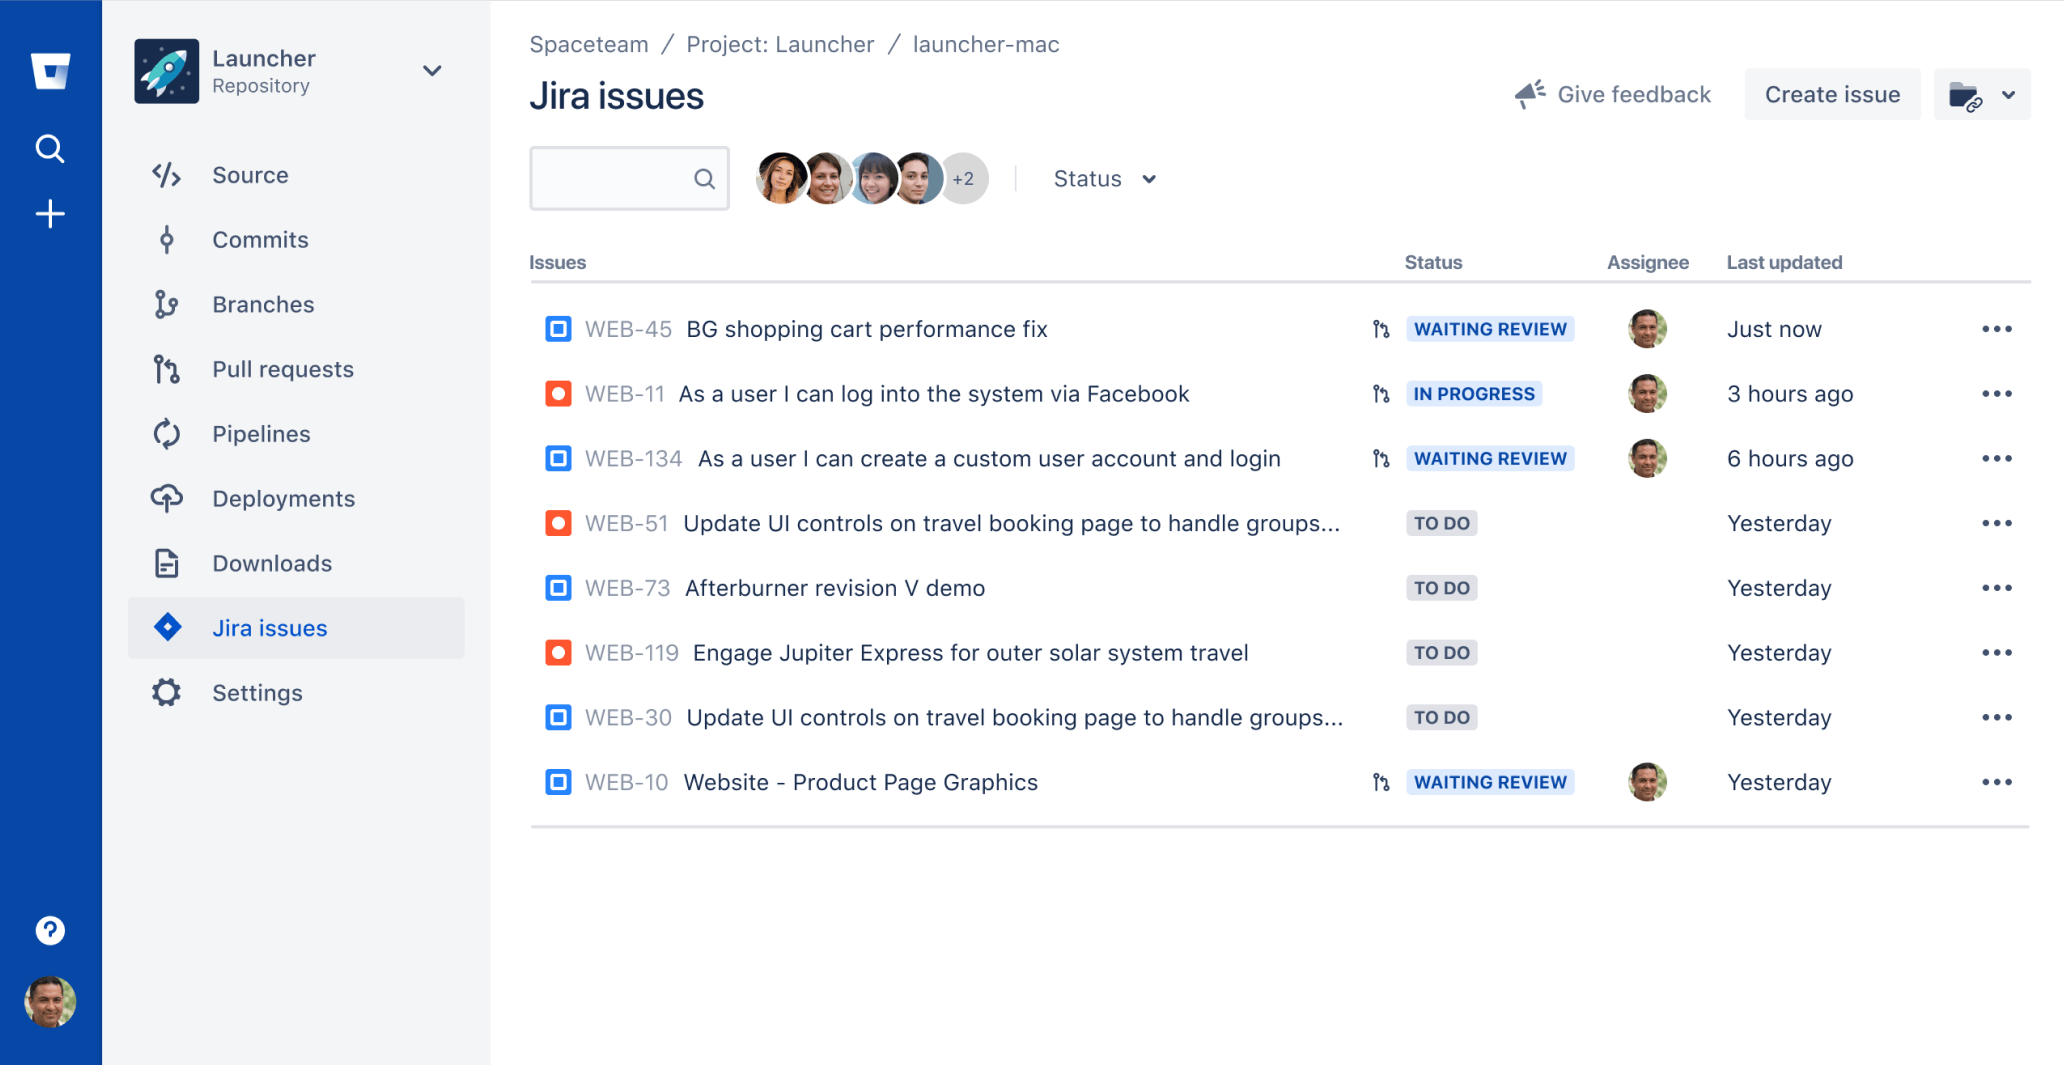 Jira Issues Tab